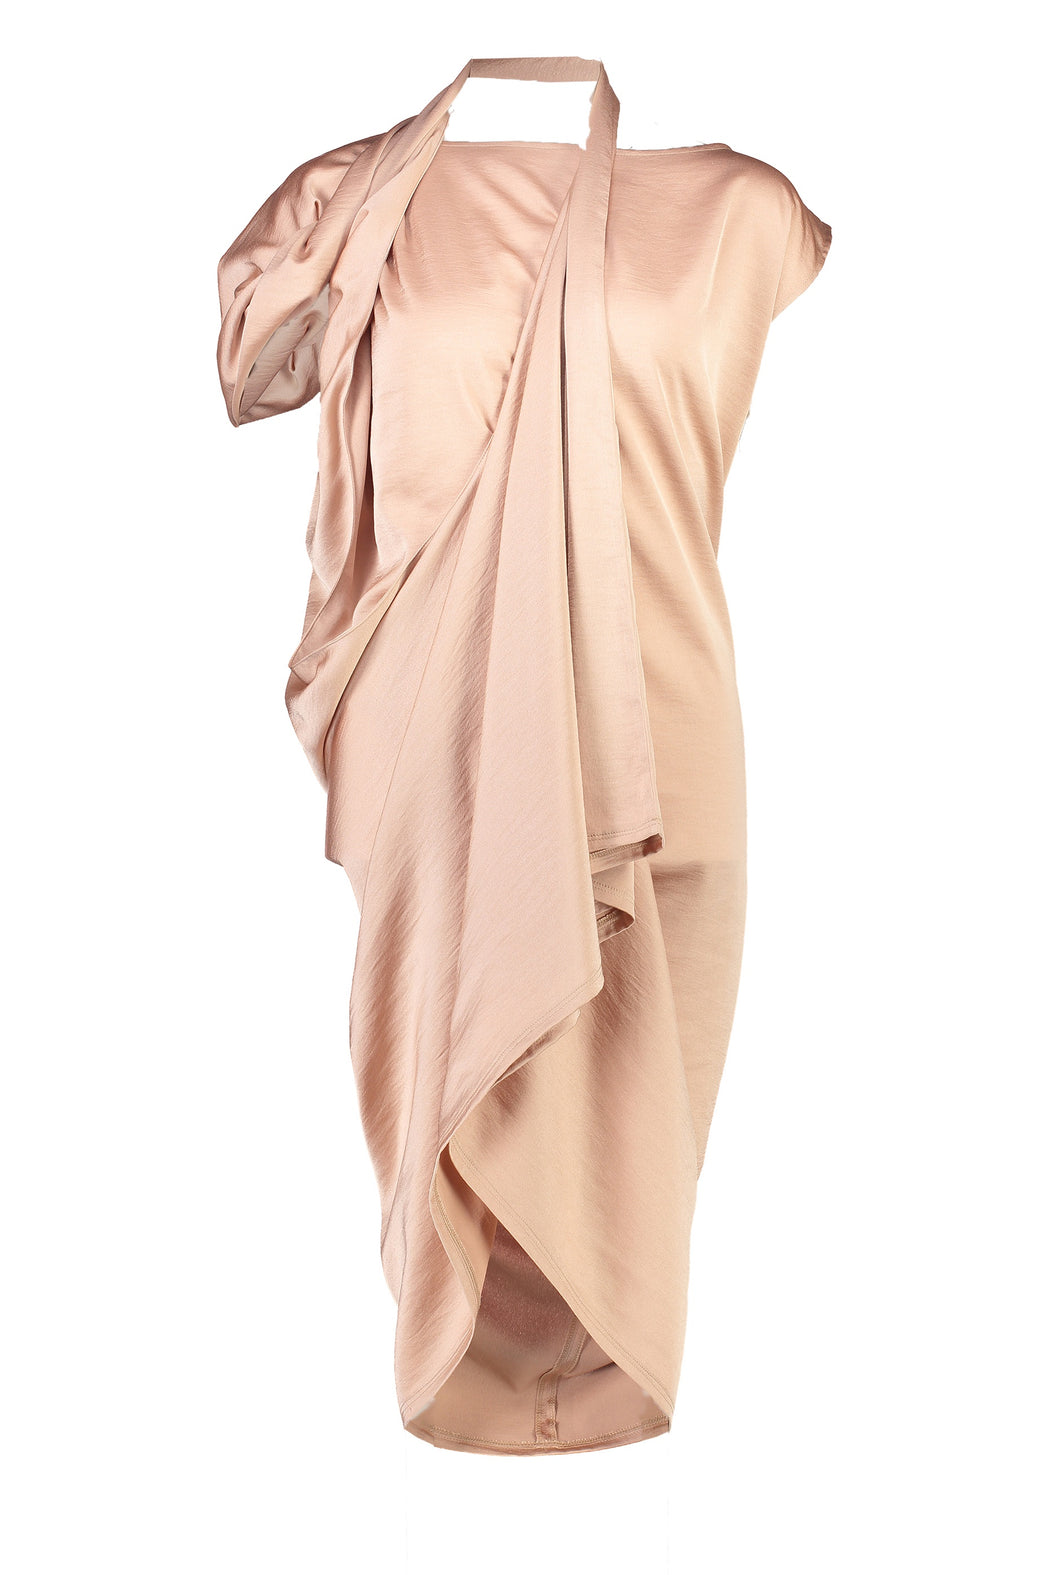 WORLD 4378 Travolta Dress Dusky Pink